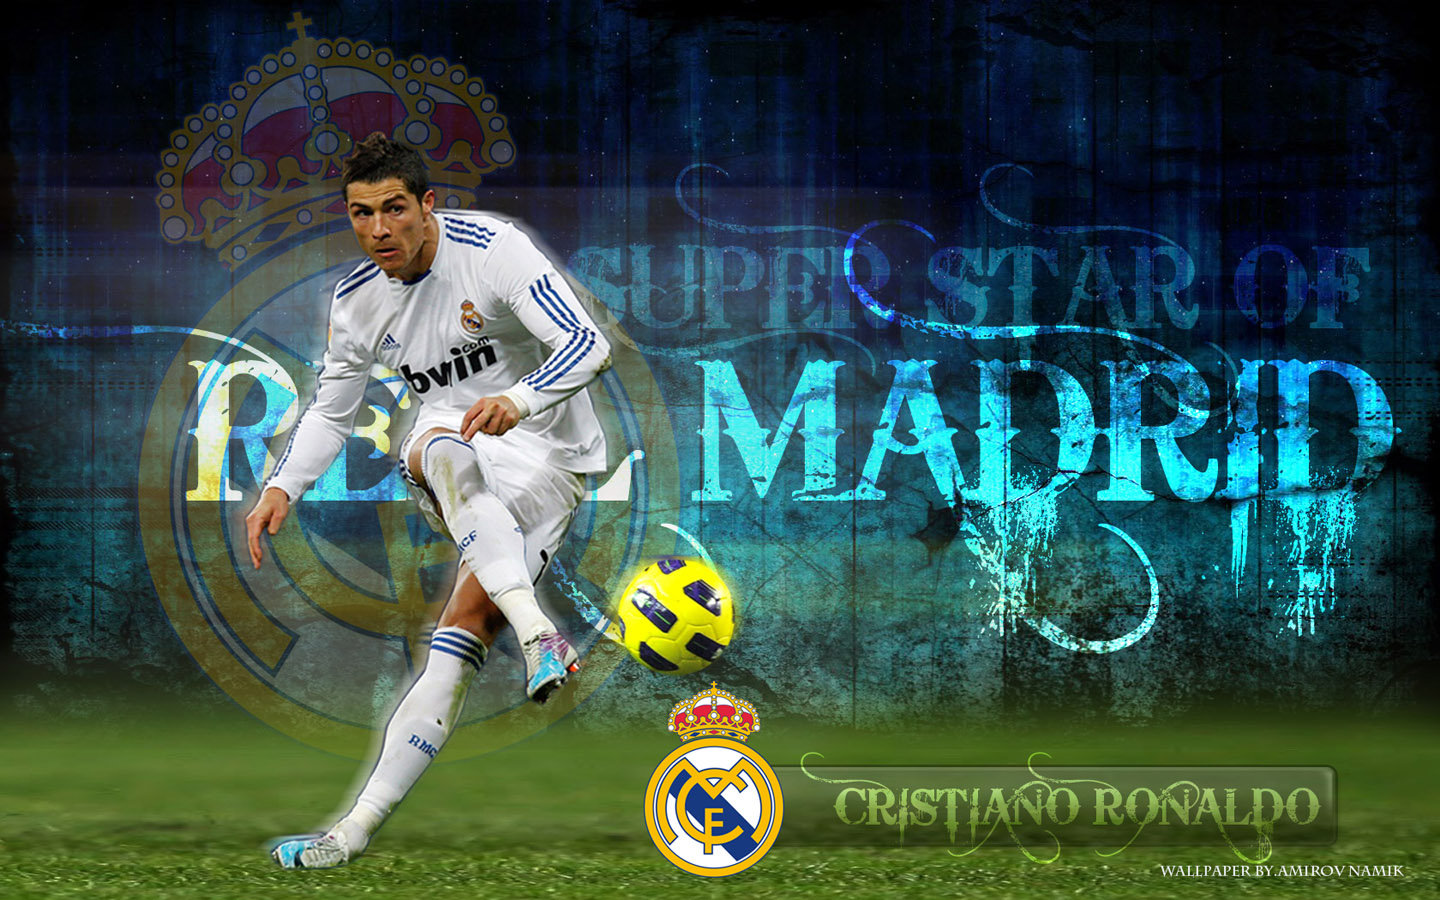 Cristiano-ronaldo-real-madrid-PixelsTalk-Net-wallpaper-wpc5803794